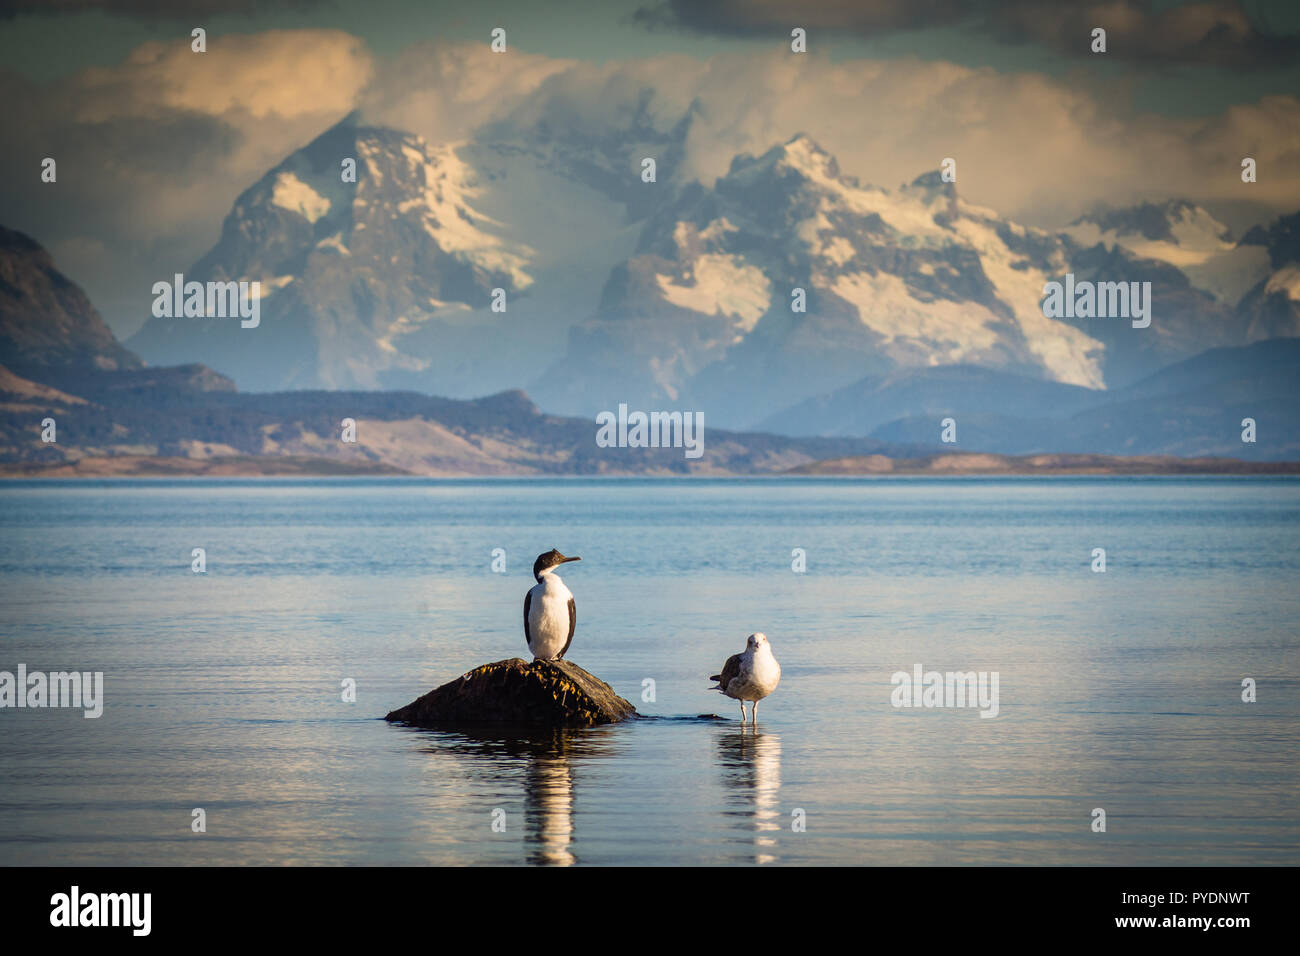 Two birds sitting on a rock by the sea. - Stock Image